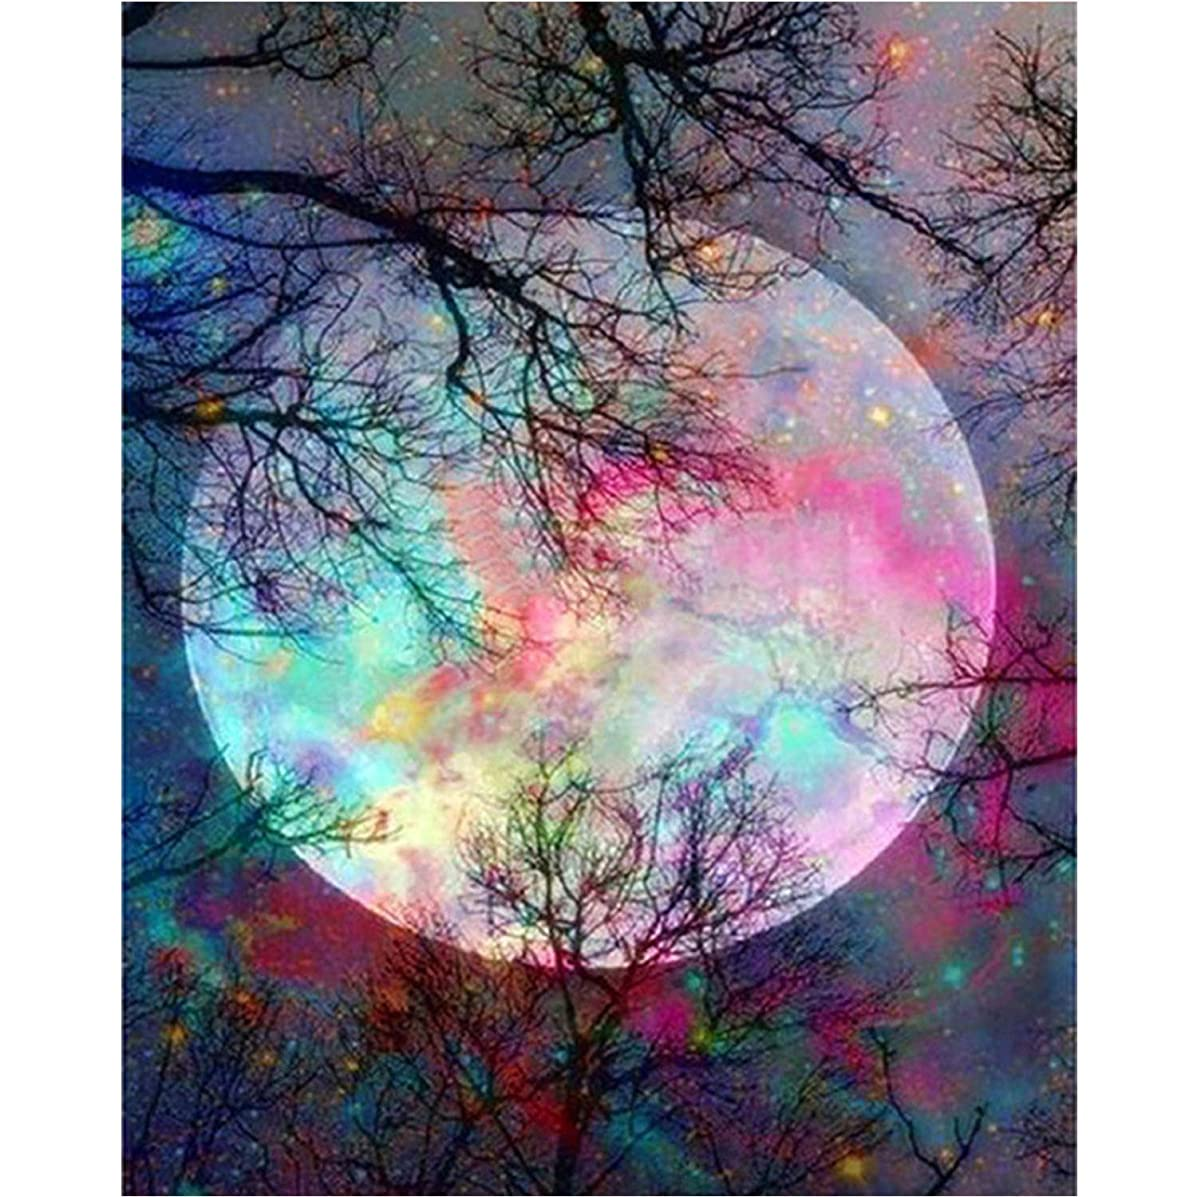 5D Full Drill Diamond Painting Kit,Hartop DIY Diamond Rhinestone Painting Kits for Adults and Beginner,Embroidery Arts Craft Home Office Decor 12 X16 Inch (Moon)